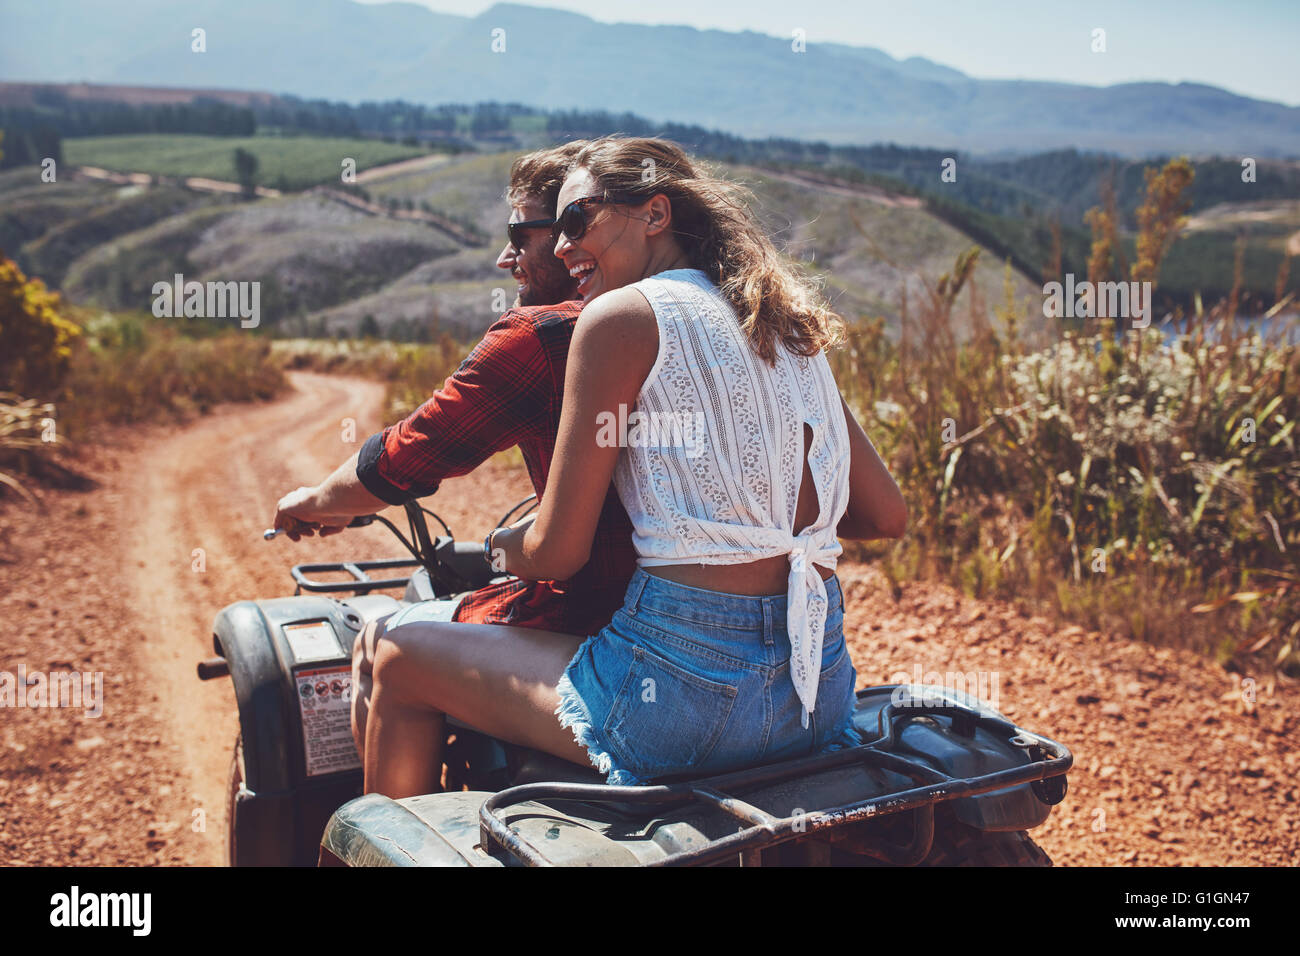 Rear view shot of young couple riding on a quad bike in countryside and looking away smiling. Woman sitting behind - Stock Image